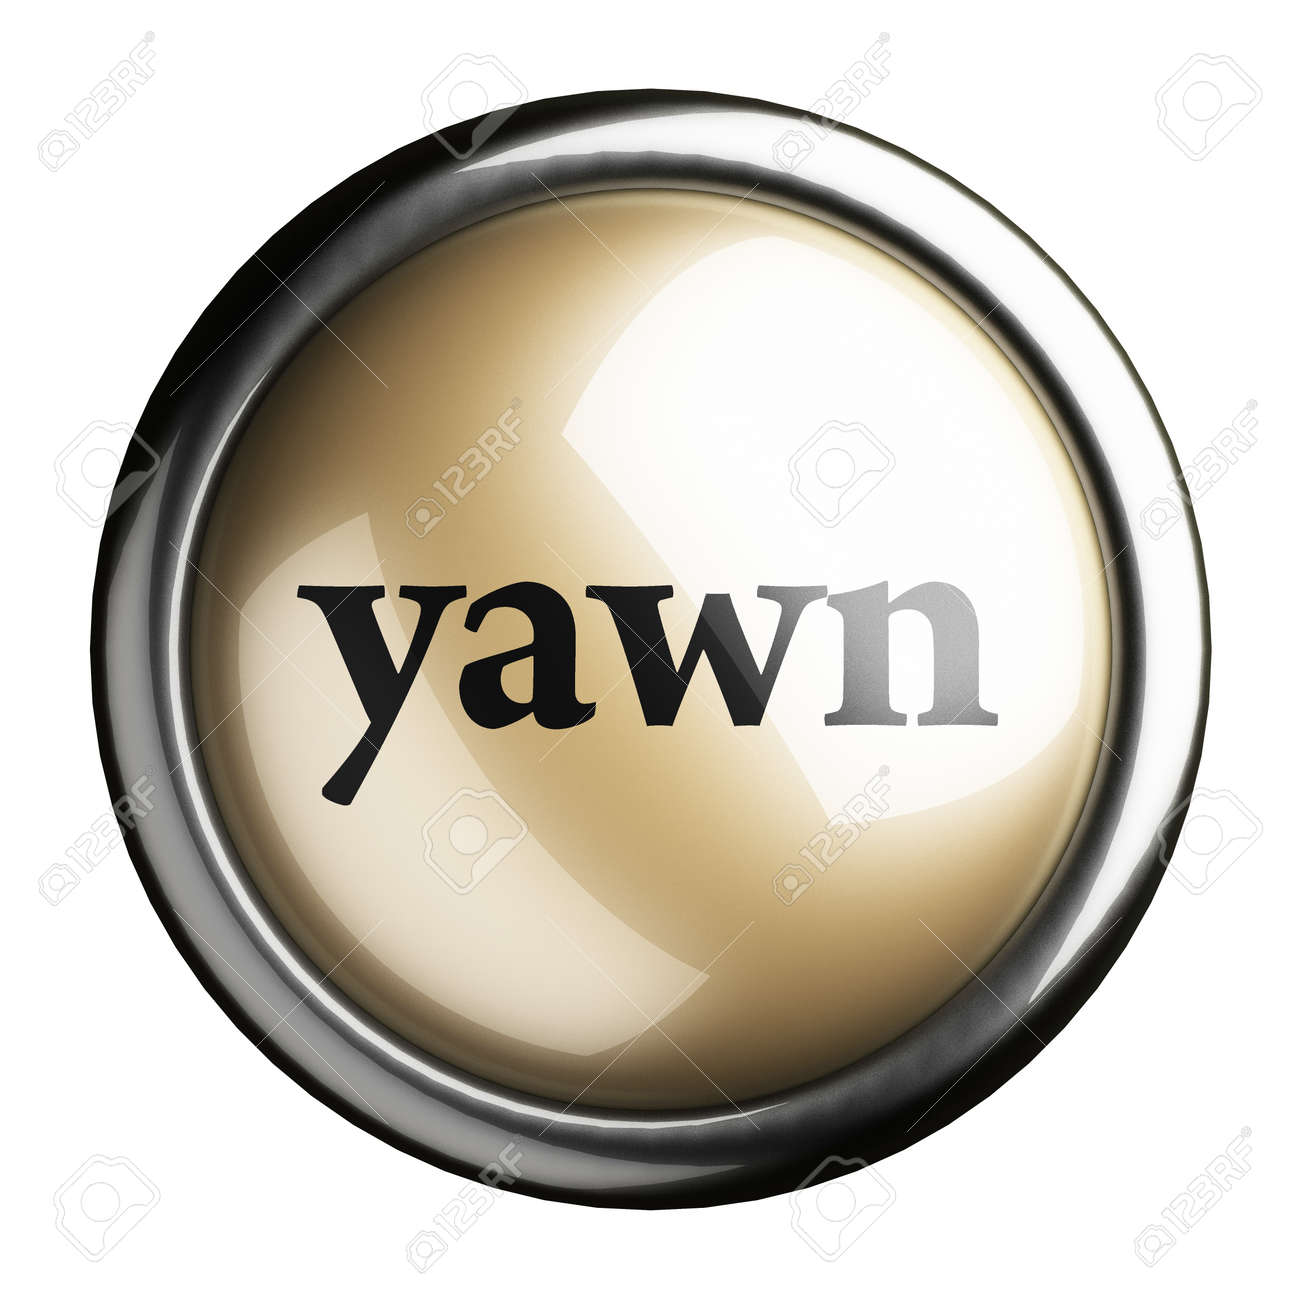 Word on the button Stock Photo - 17749668